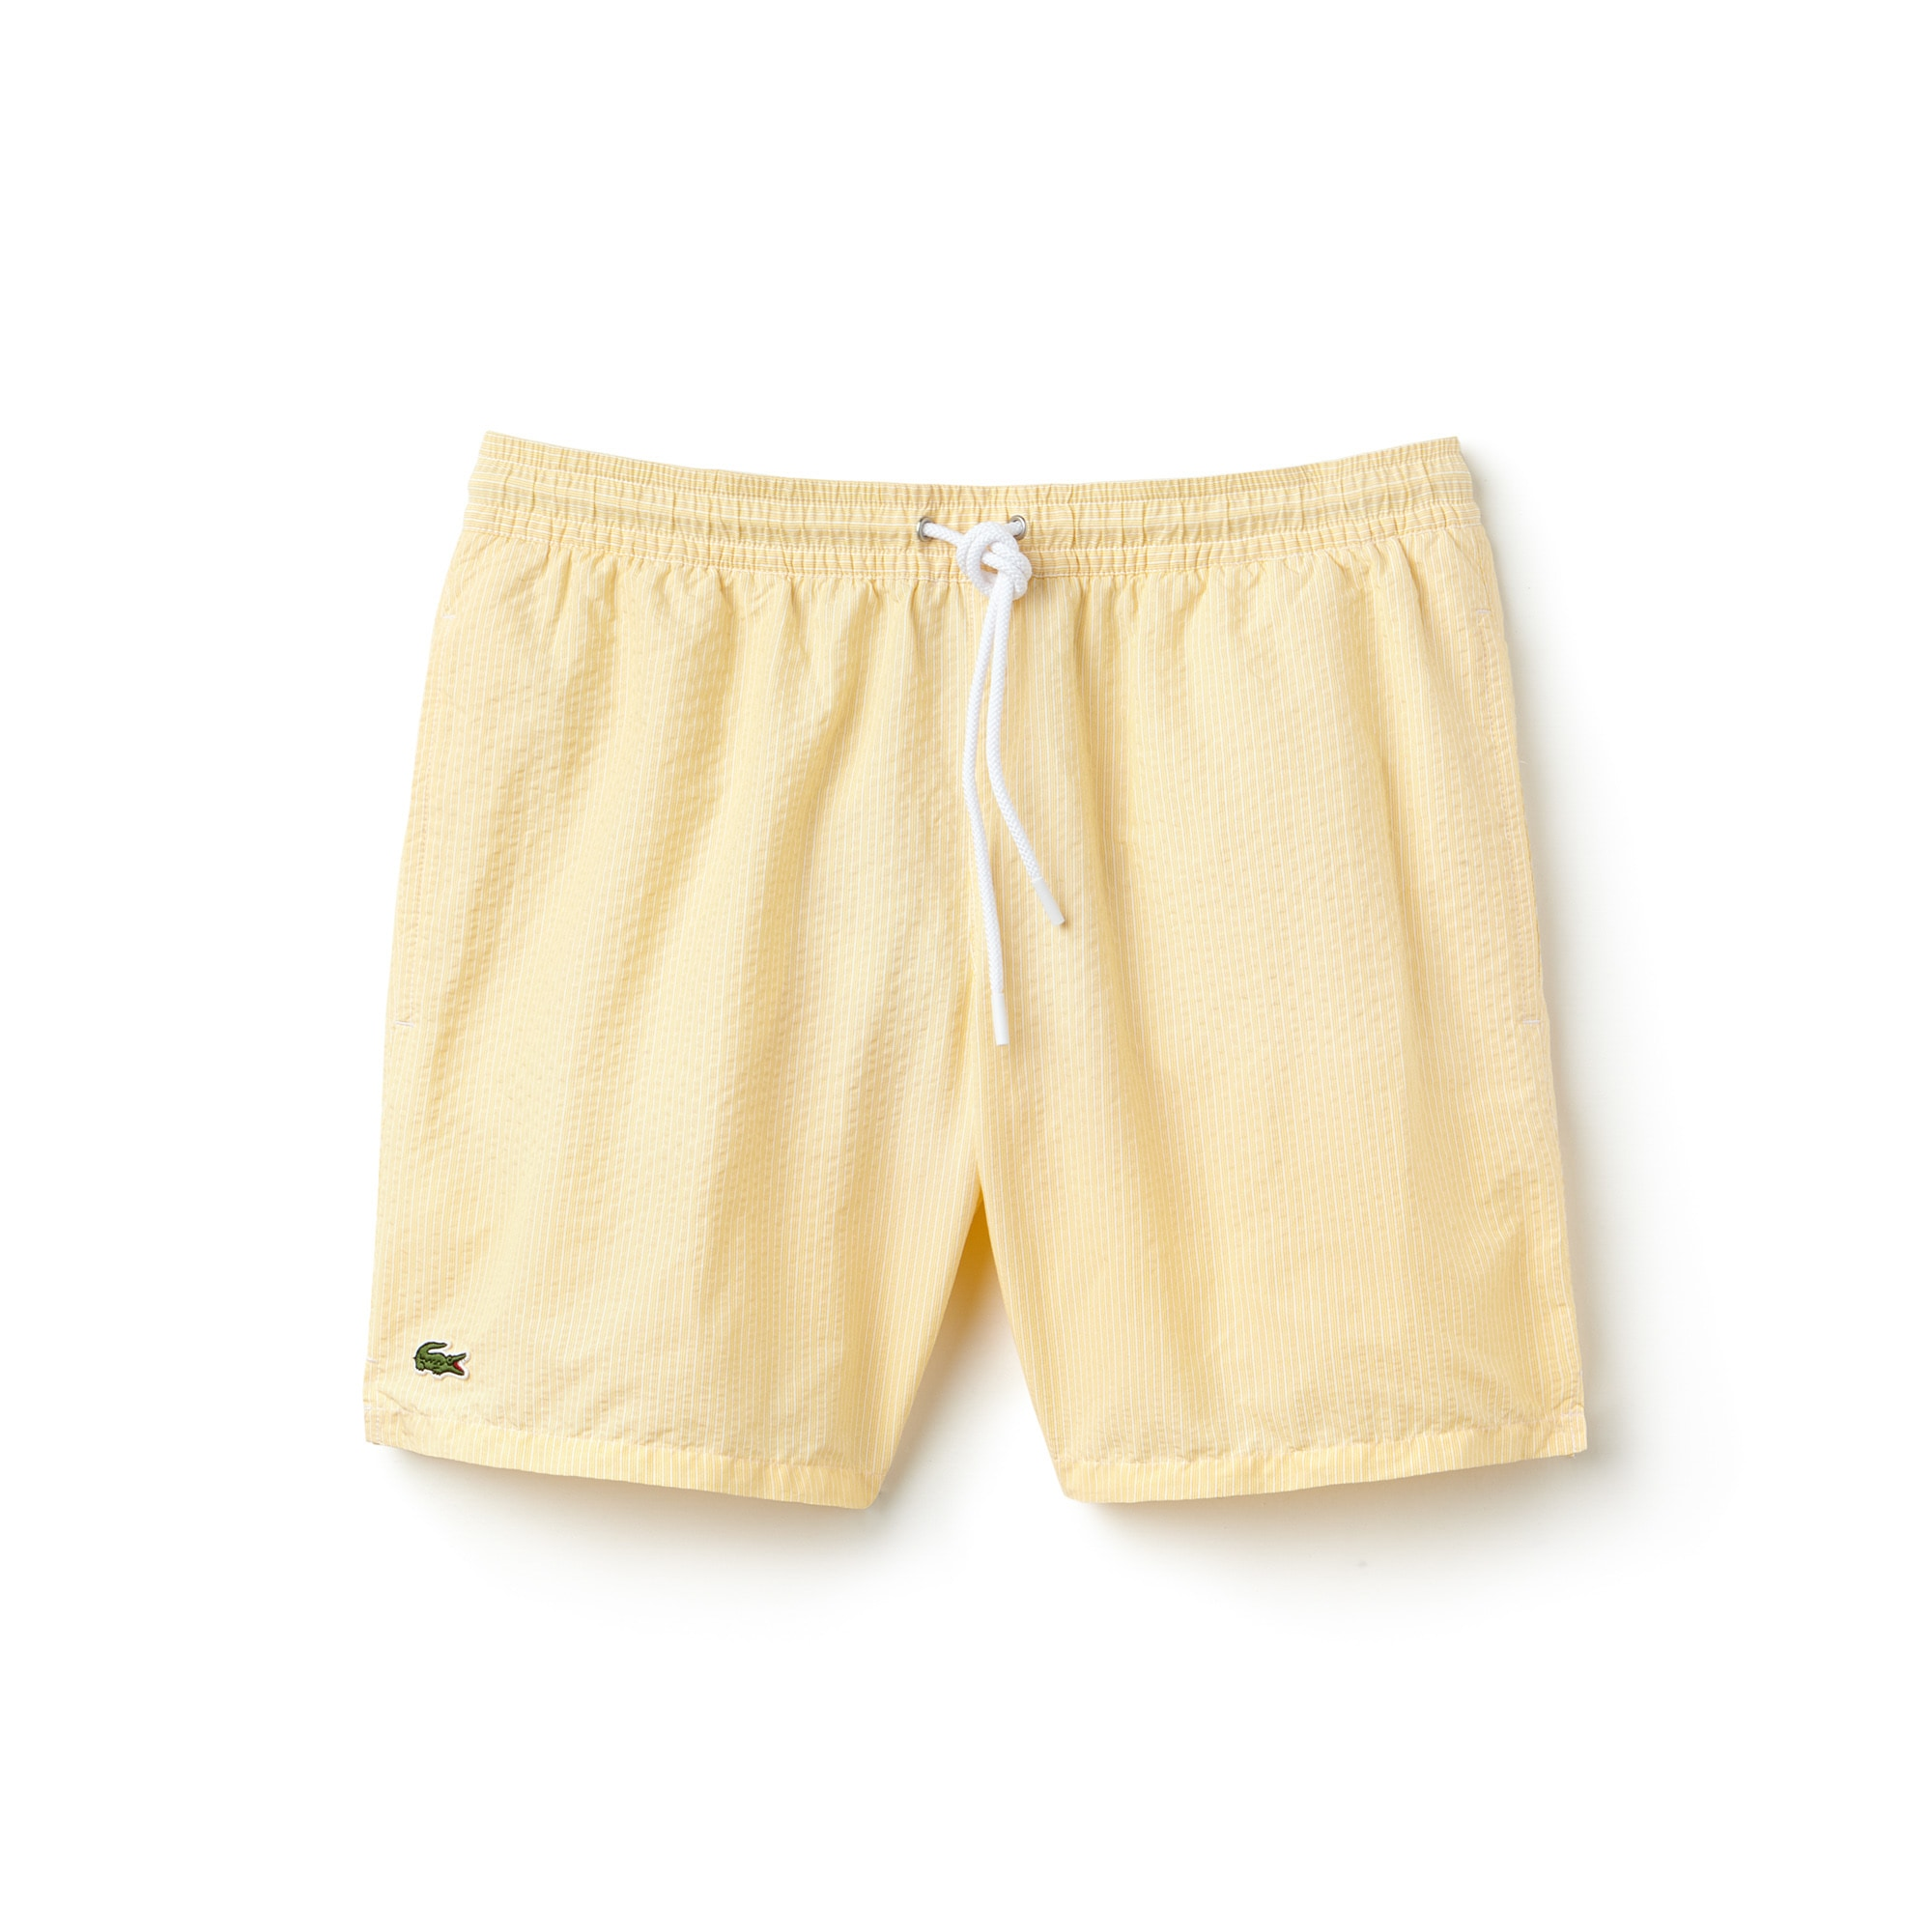 Men's Striped Seersucker Swimming Trunks